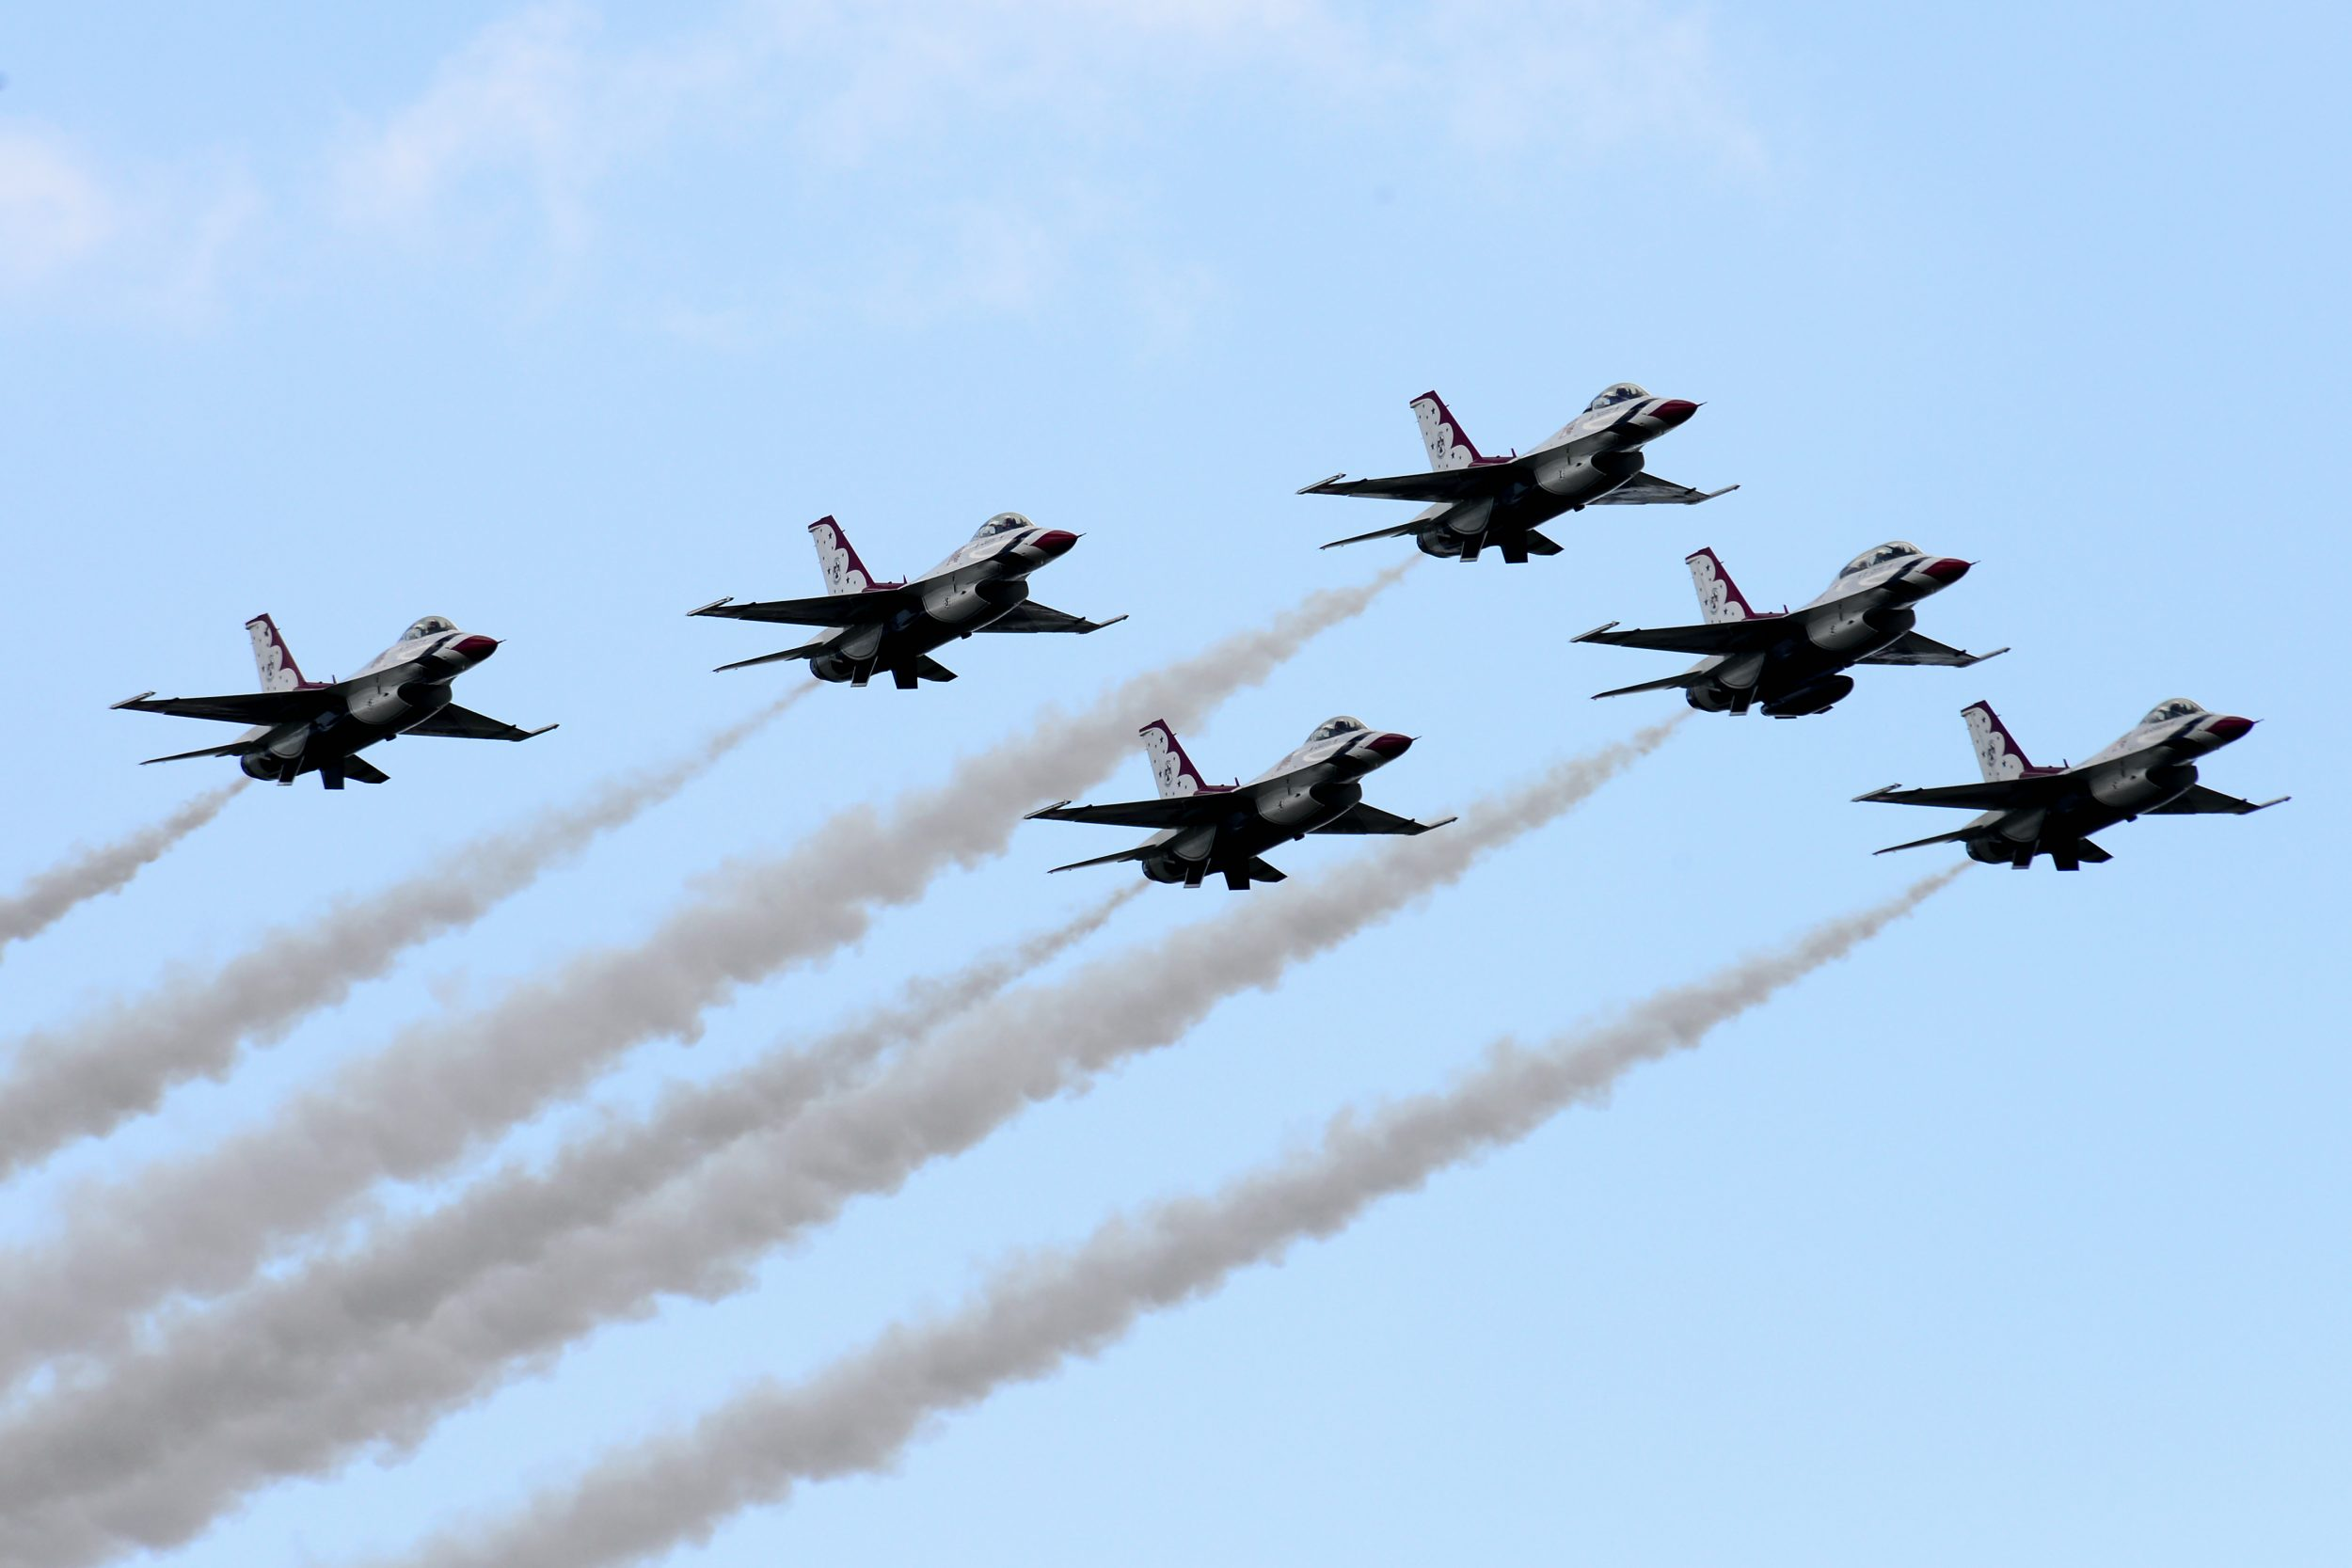 The Thunderbirds Delta Formation pilots perform the Delta Flat Pass, during a practice show at Melbourne, Fla. Oct. 3, 2014. (U.S. Air Force photo/Tech. Sgt. Manuel J. Martinez)